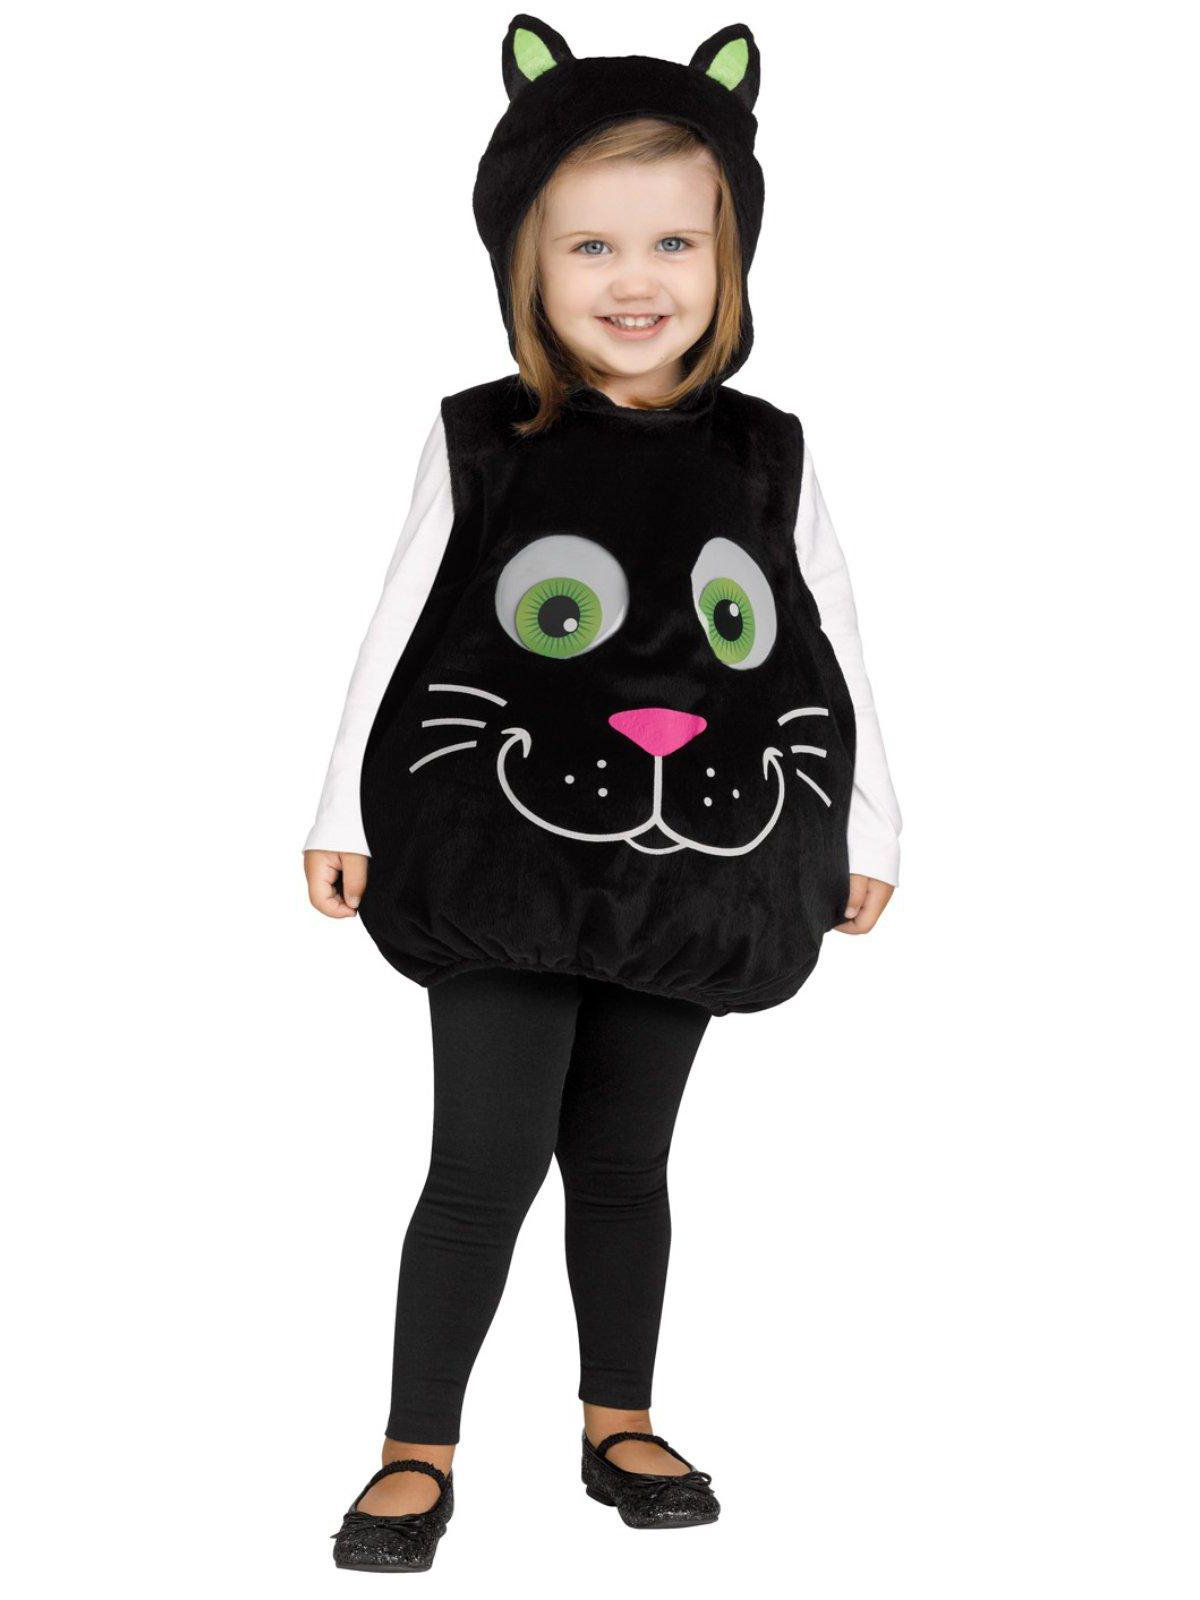 Baby Cat Googly Eyes Costume For Babies  sc 1 st  Wholesale Halloween Costumes & Baby Cat Googly Eyes Costume For Babies - Baby/Toddler Costumes for ...